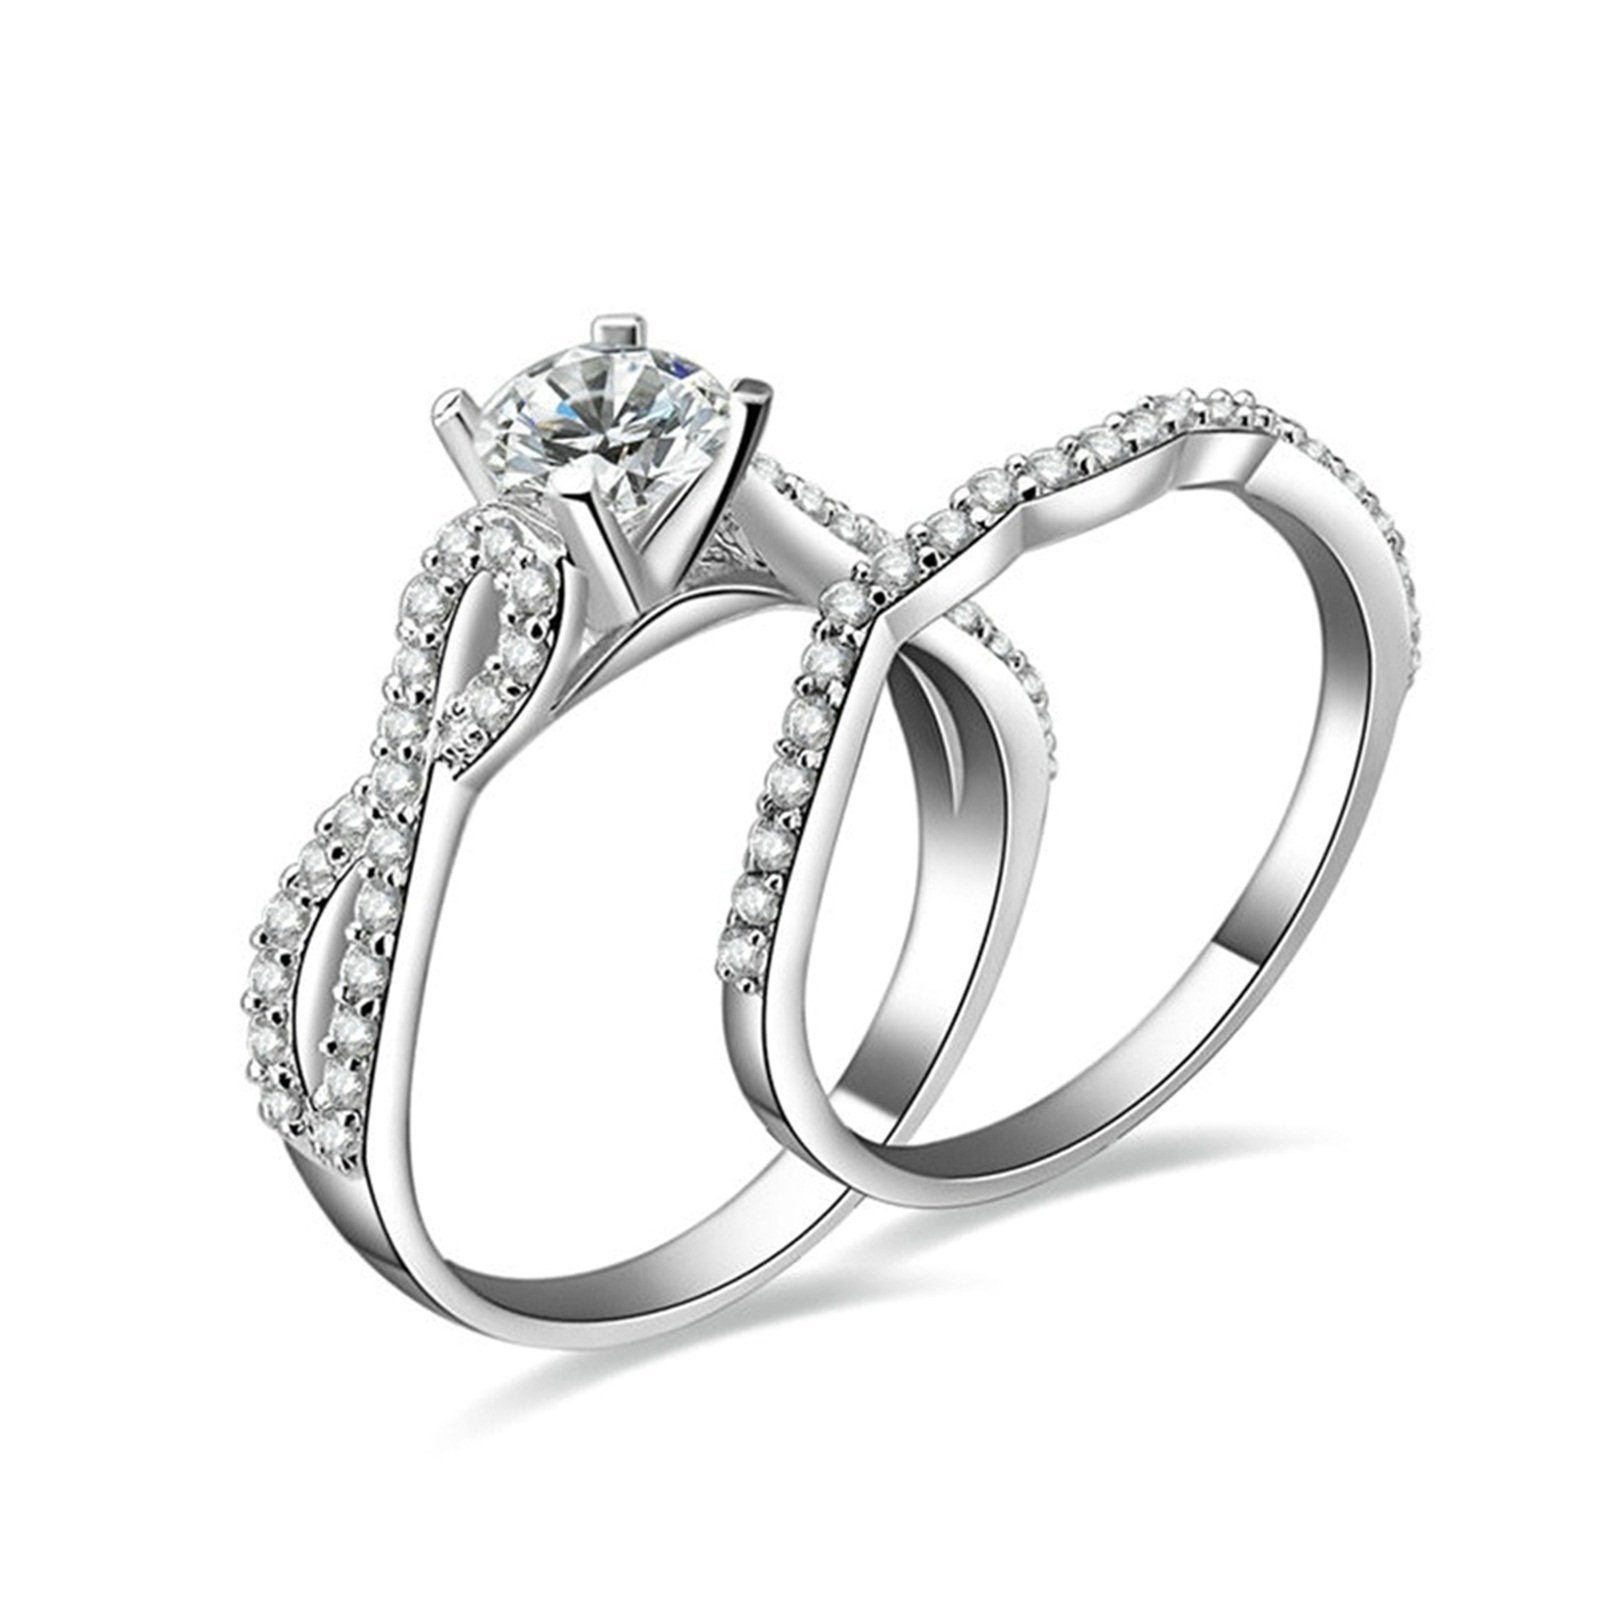 Daesar Wedding Rings 925 Sterling Silver 4-Prong Setting Round Crystal Infinity Ring Set Ring Size 6.5